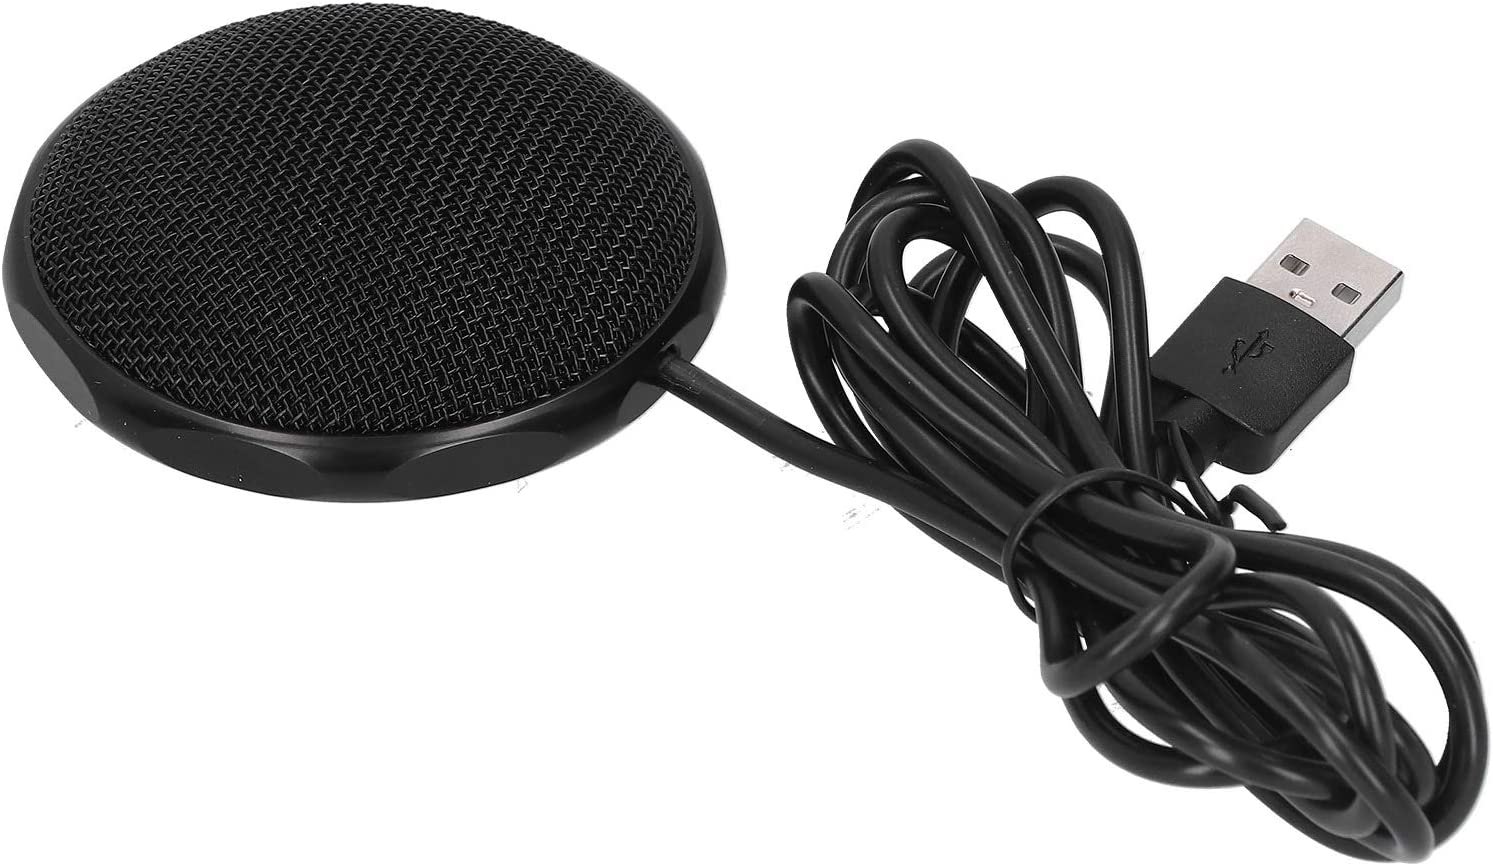 Complete Free Shipping Bindpo USB Microphone Metal High Sound P 360 Degree Product Sensitivity